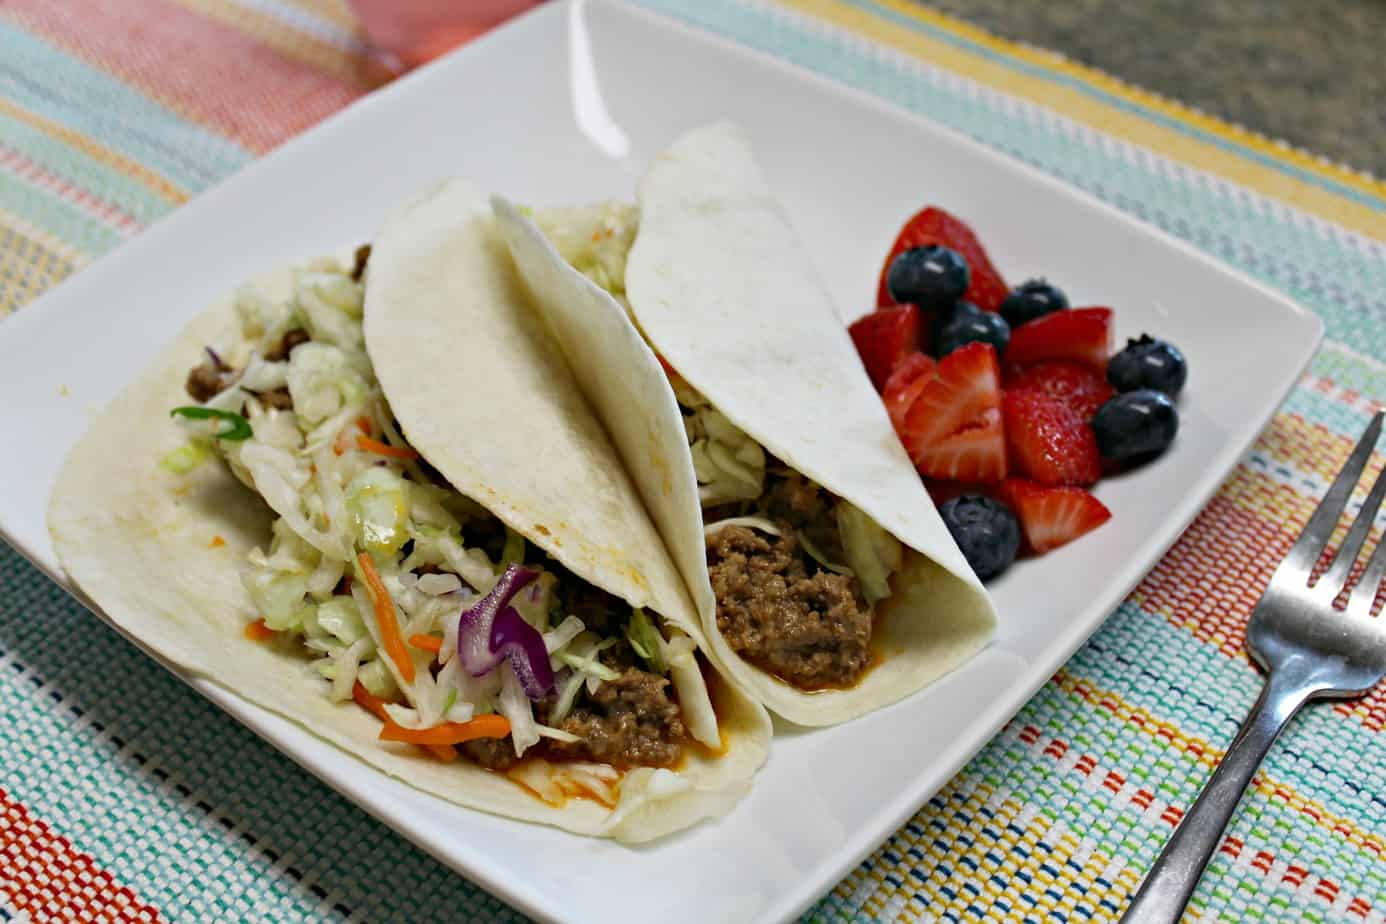 Dinnerly - Cheesy Grass-Fed Beef Tacos with Shredded Cabbage & Carrots